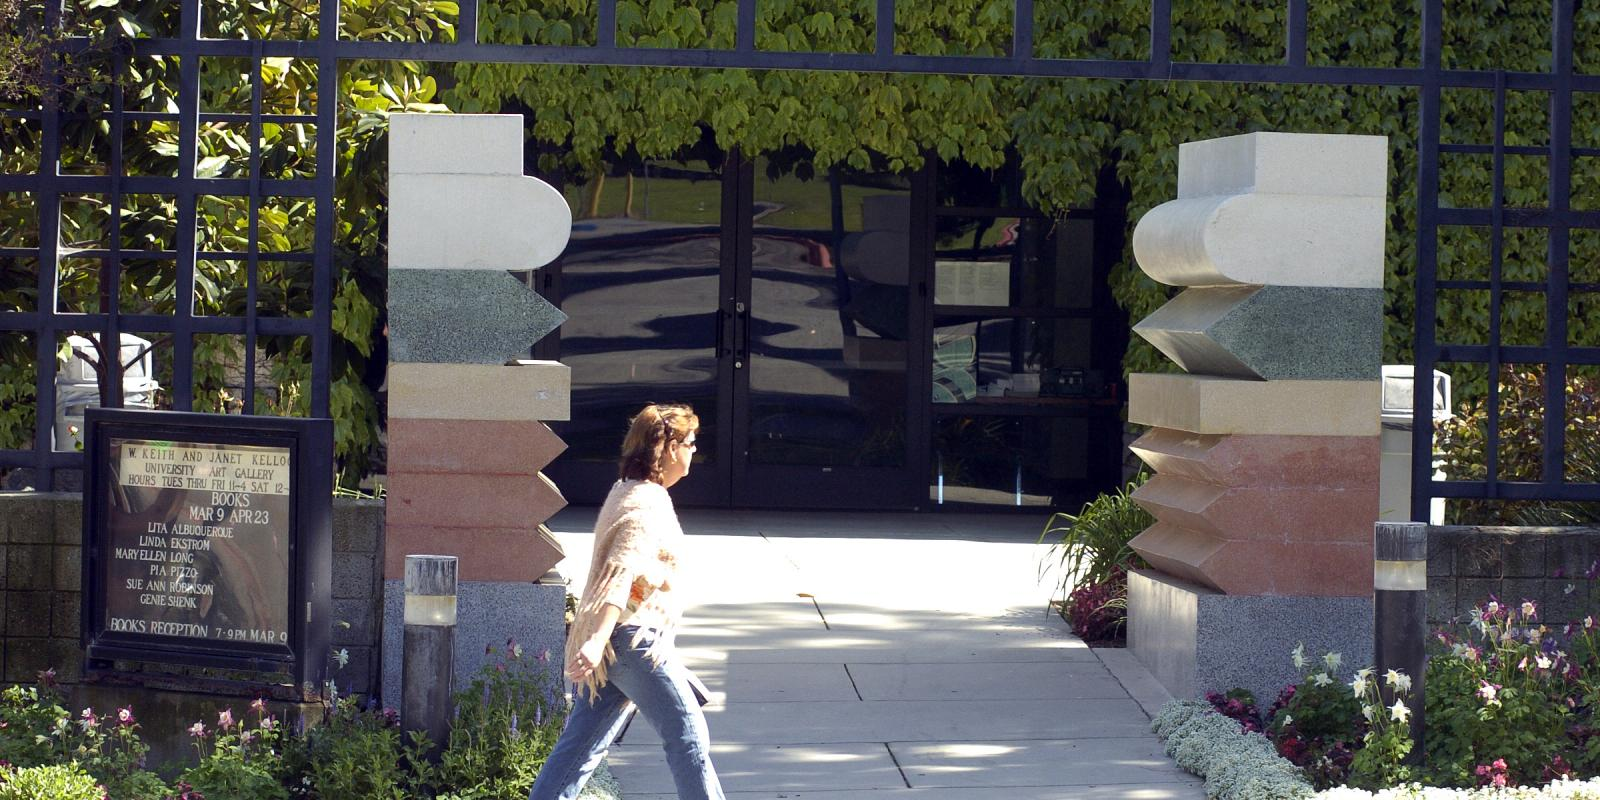 """""""The Gates"""" by Ettore Sotsass, at the entrance of the W. Keith and Janet Kellogg University Art Gallery"""